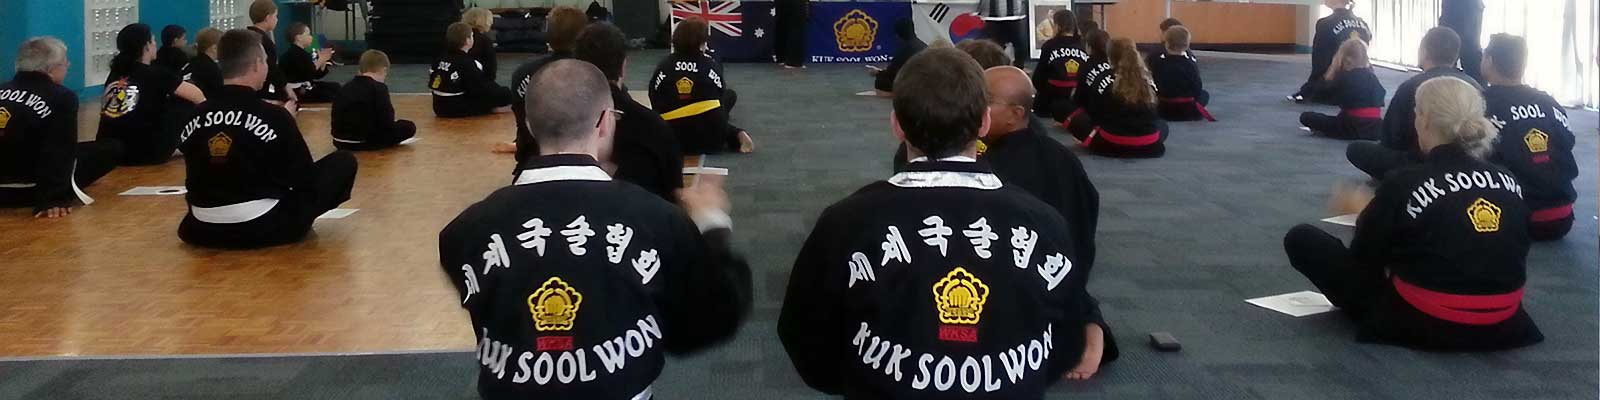 Seated group during KSW grading